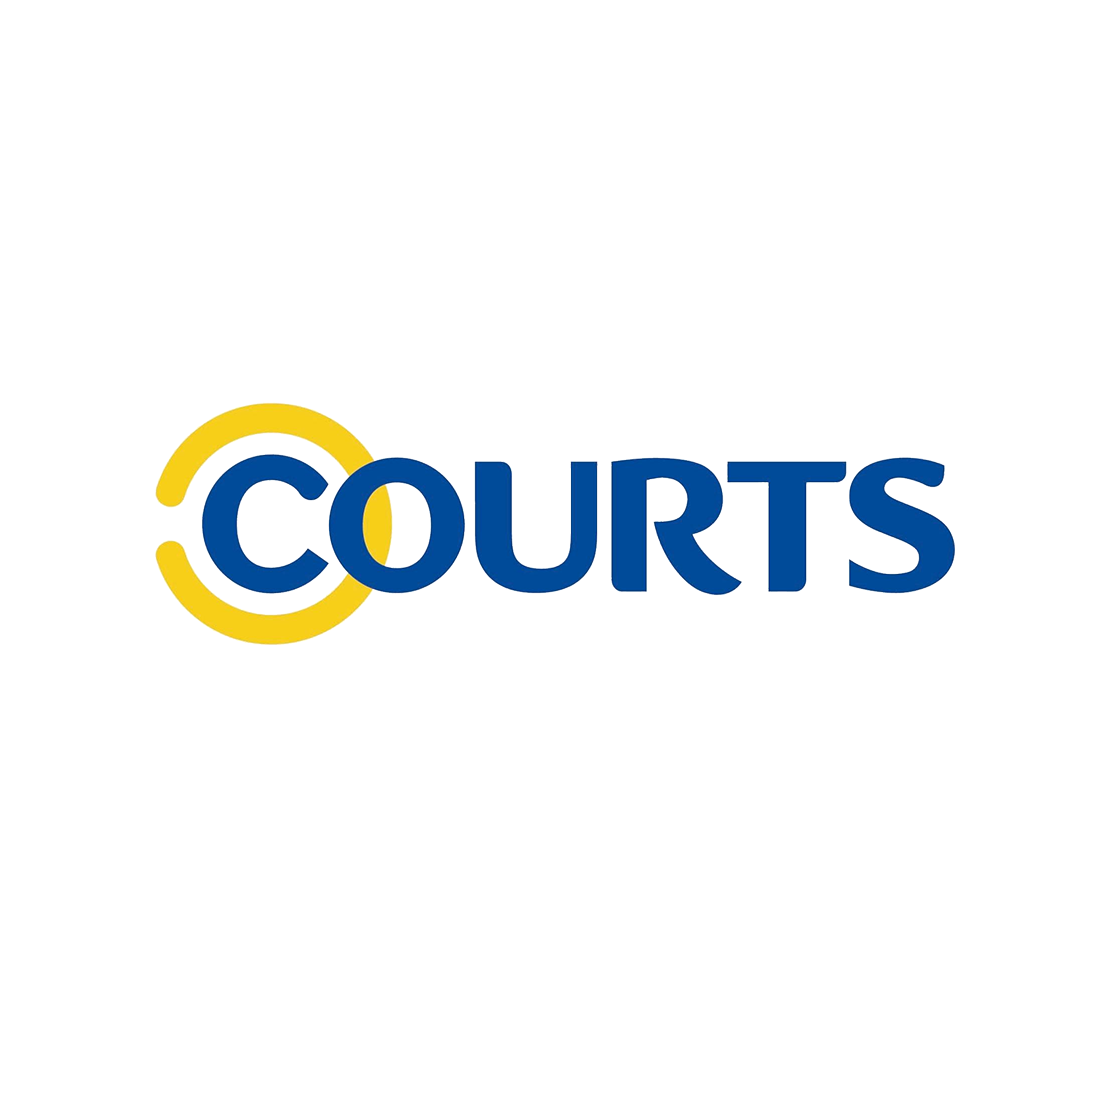 Courts4